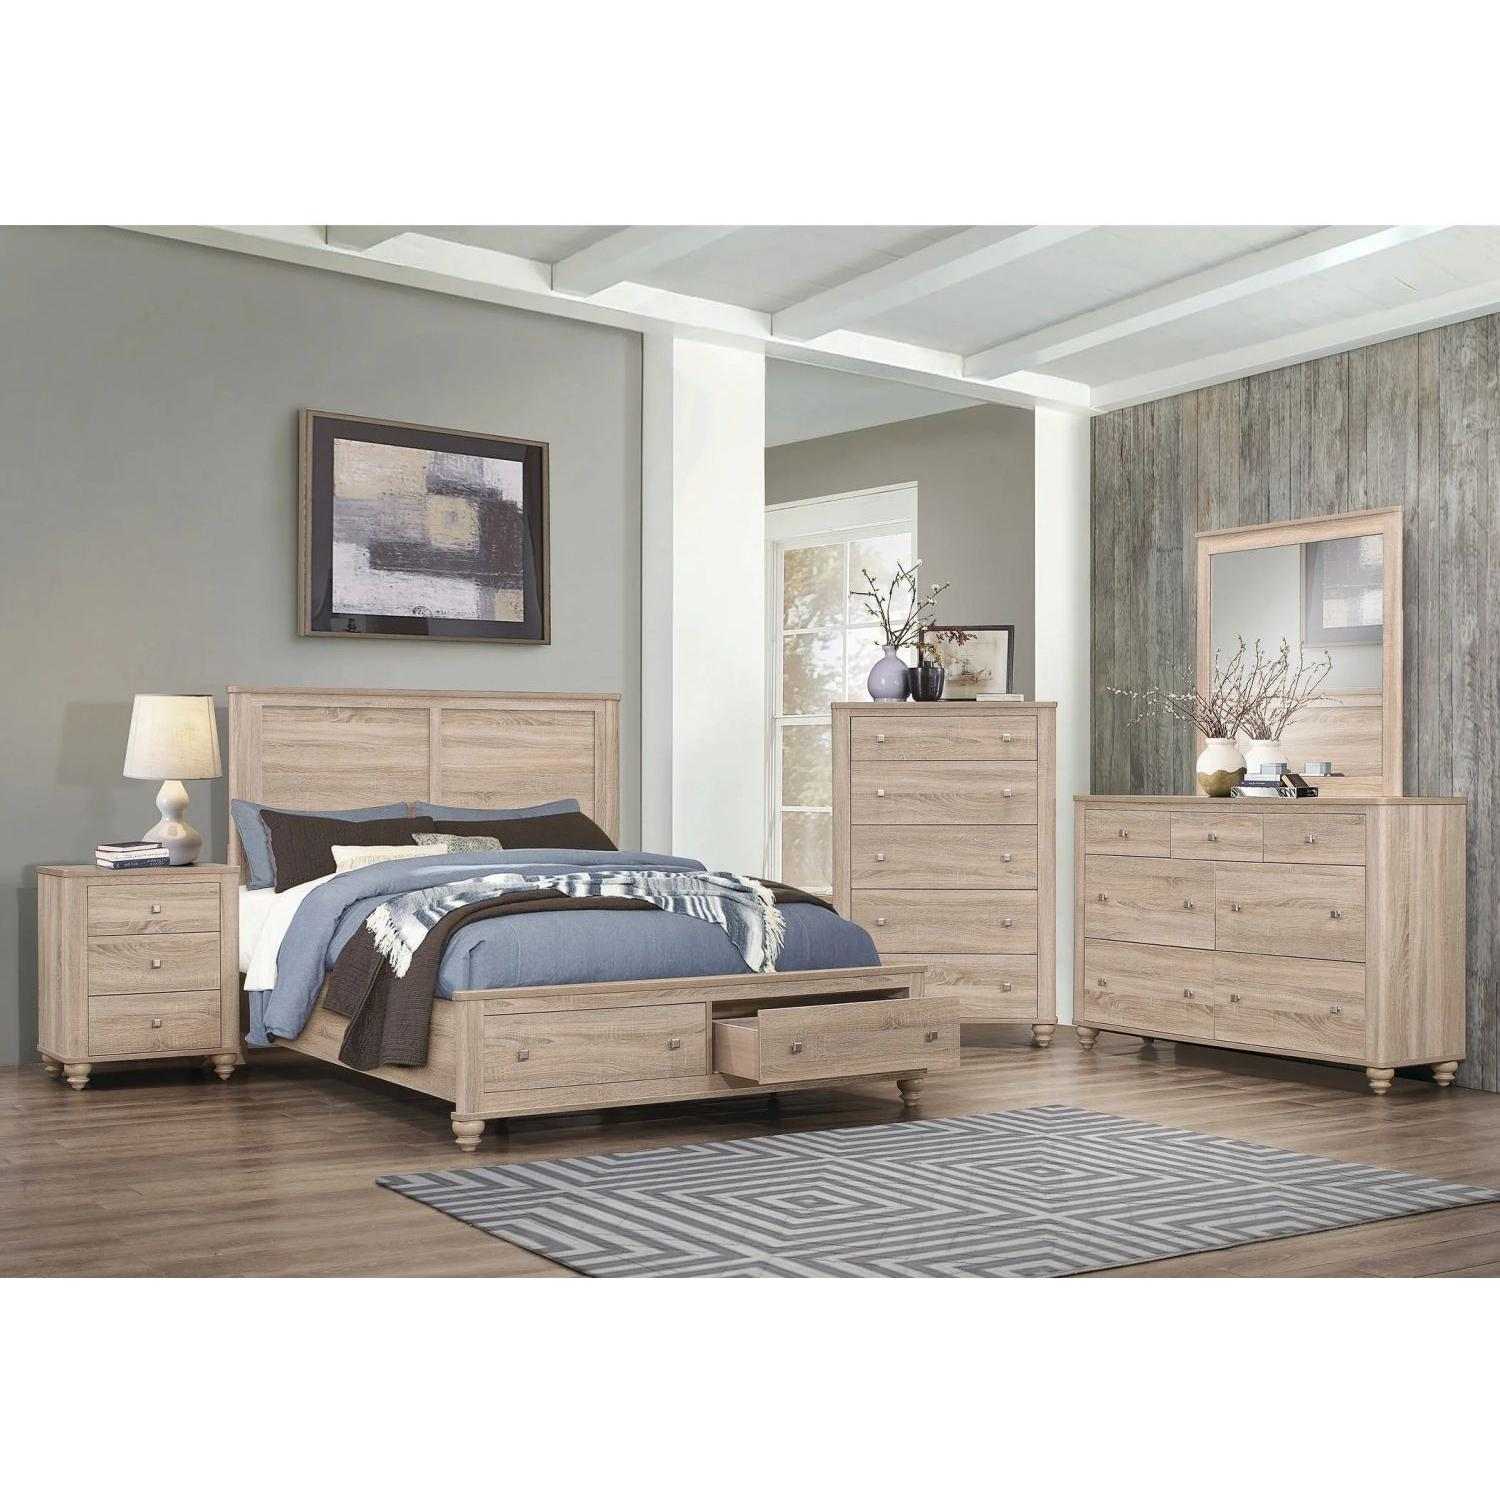 3-Piece Coffee & End Table Set in Warm Bourbon Finish - image-11